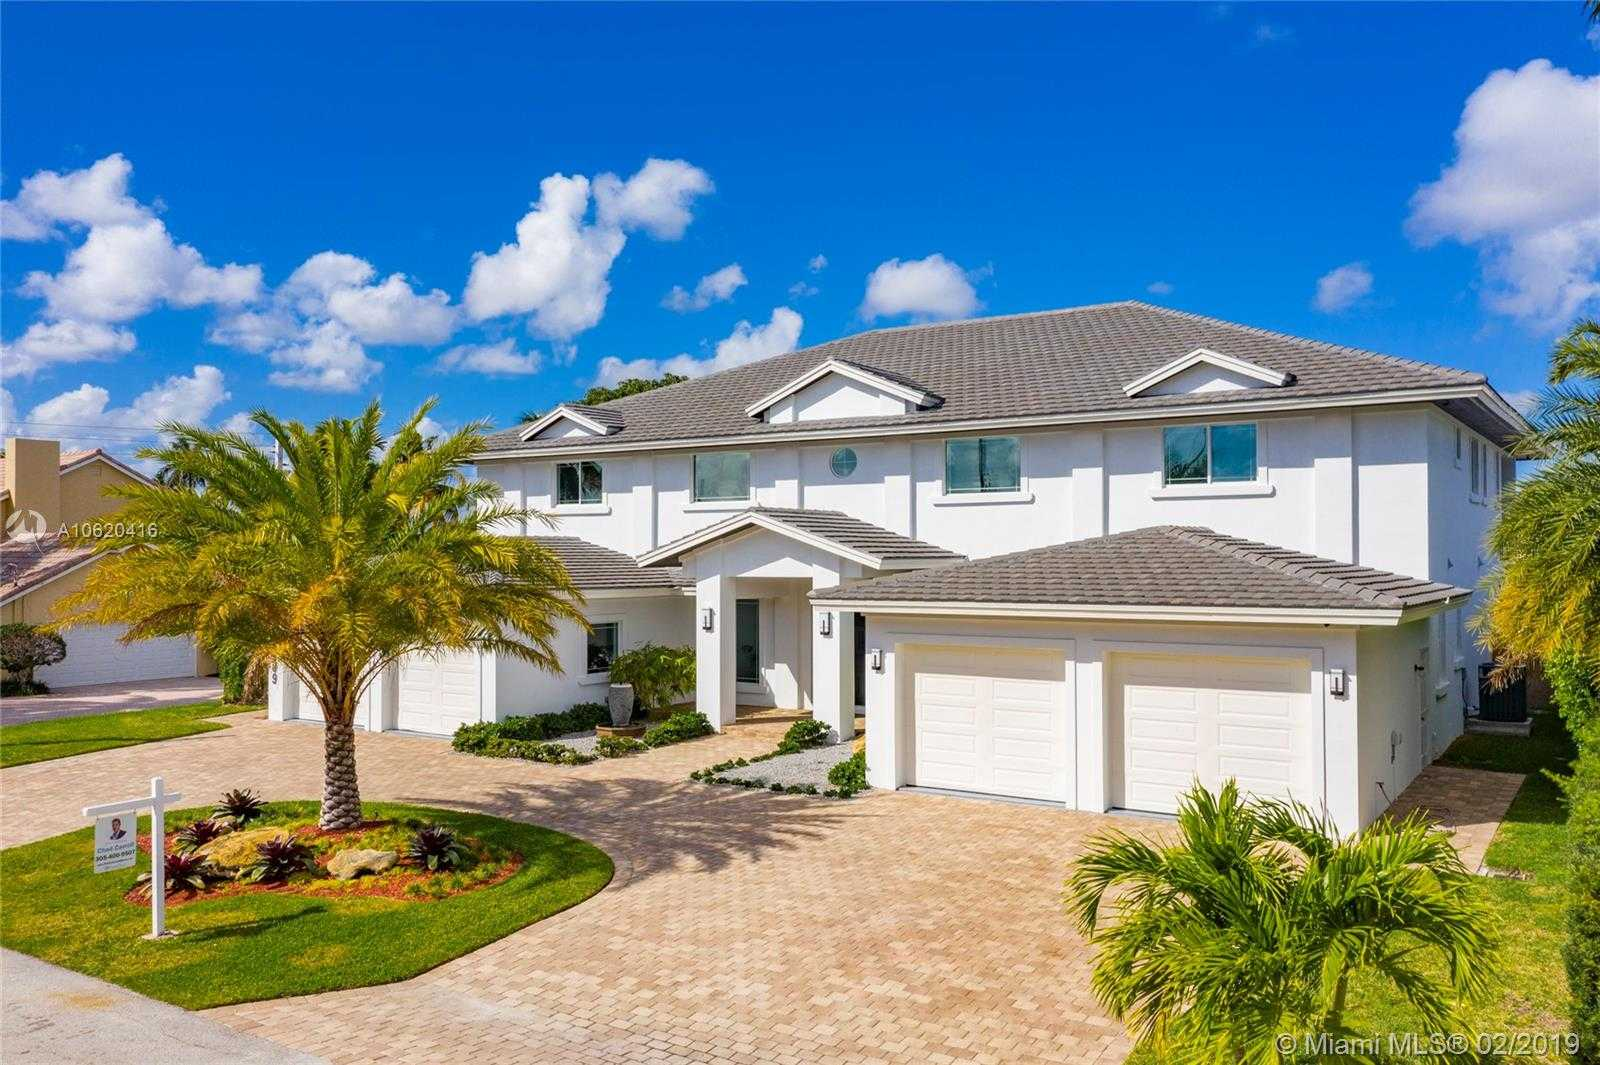 $3,695,000 - 6Br/8Ba -  for Sale in Coral Ridge Country Club, Fort Lauderdale